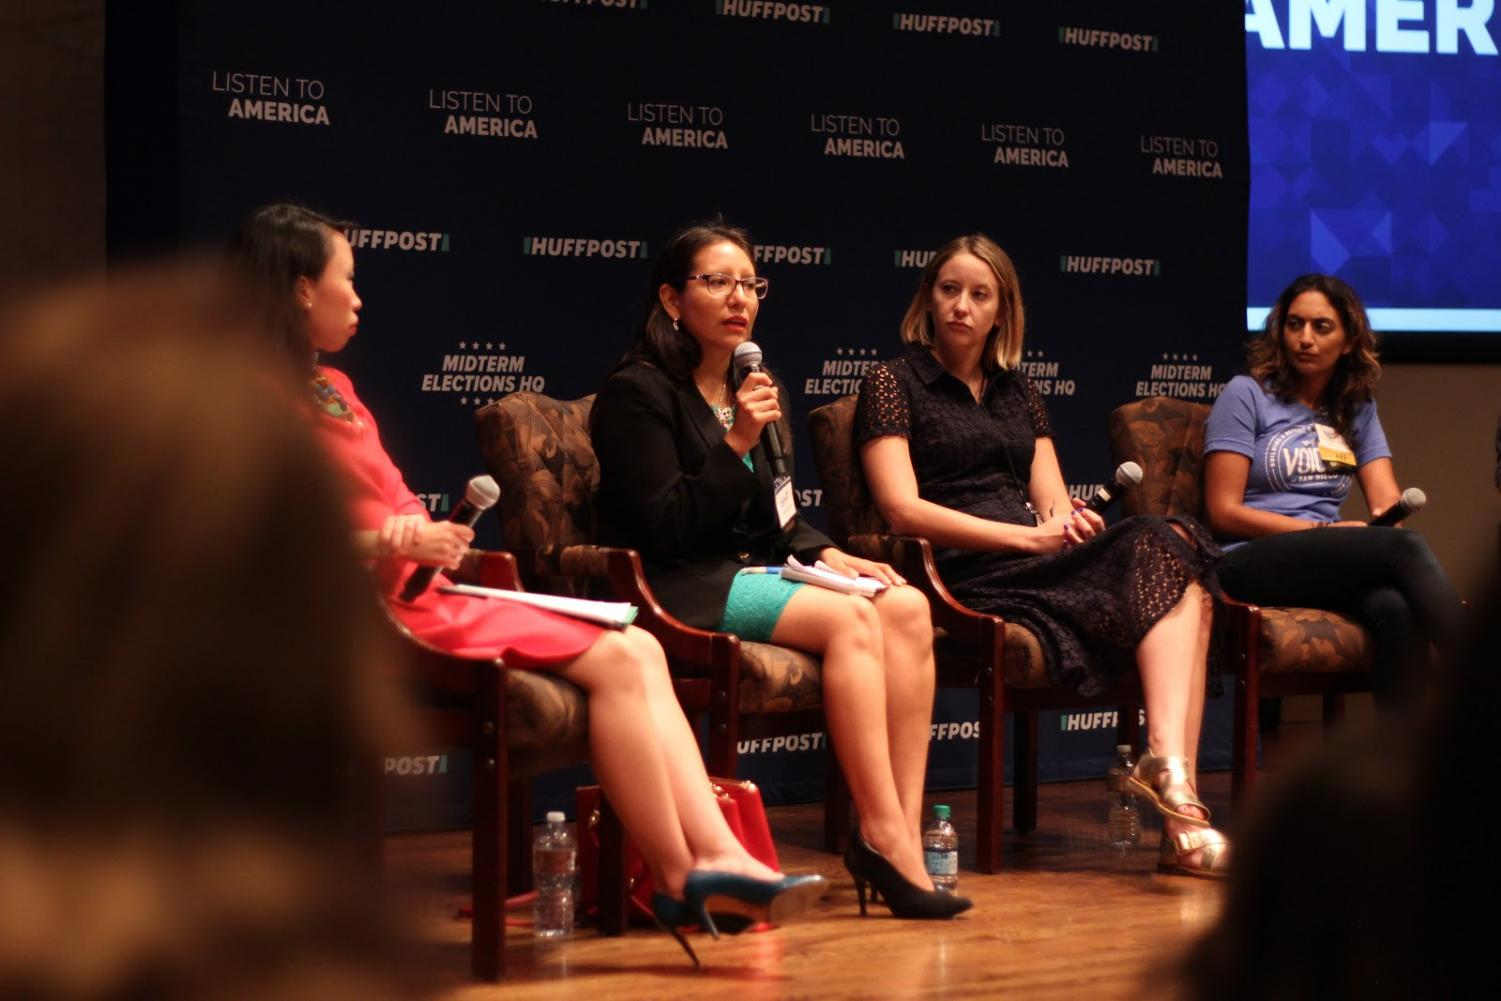 Huffington Post reporter Elise Foley, immigration attorney Dulce Garcia, UCSD professor Tom Wong and VOSD reporter Maya Srikrishnan discuss life of undocumented immigrants under today's Trump administration. By Nadia Mishkin.